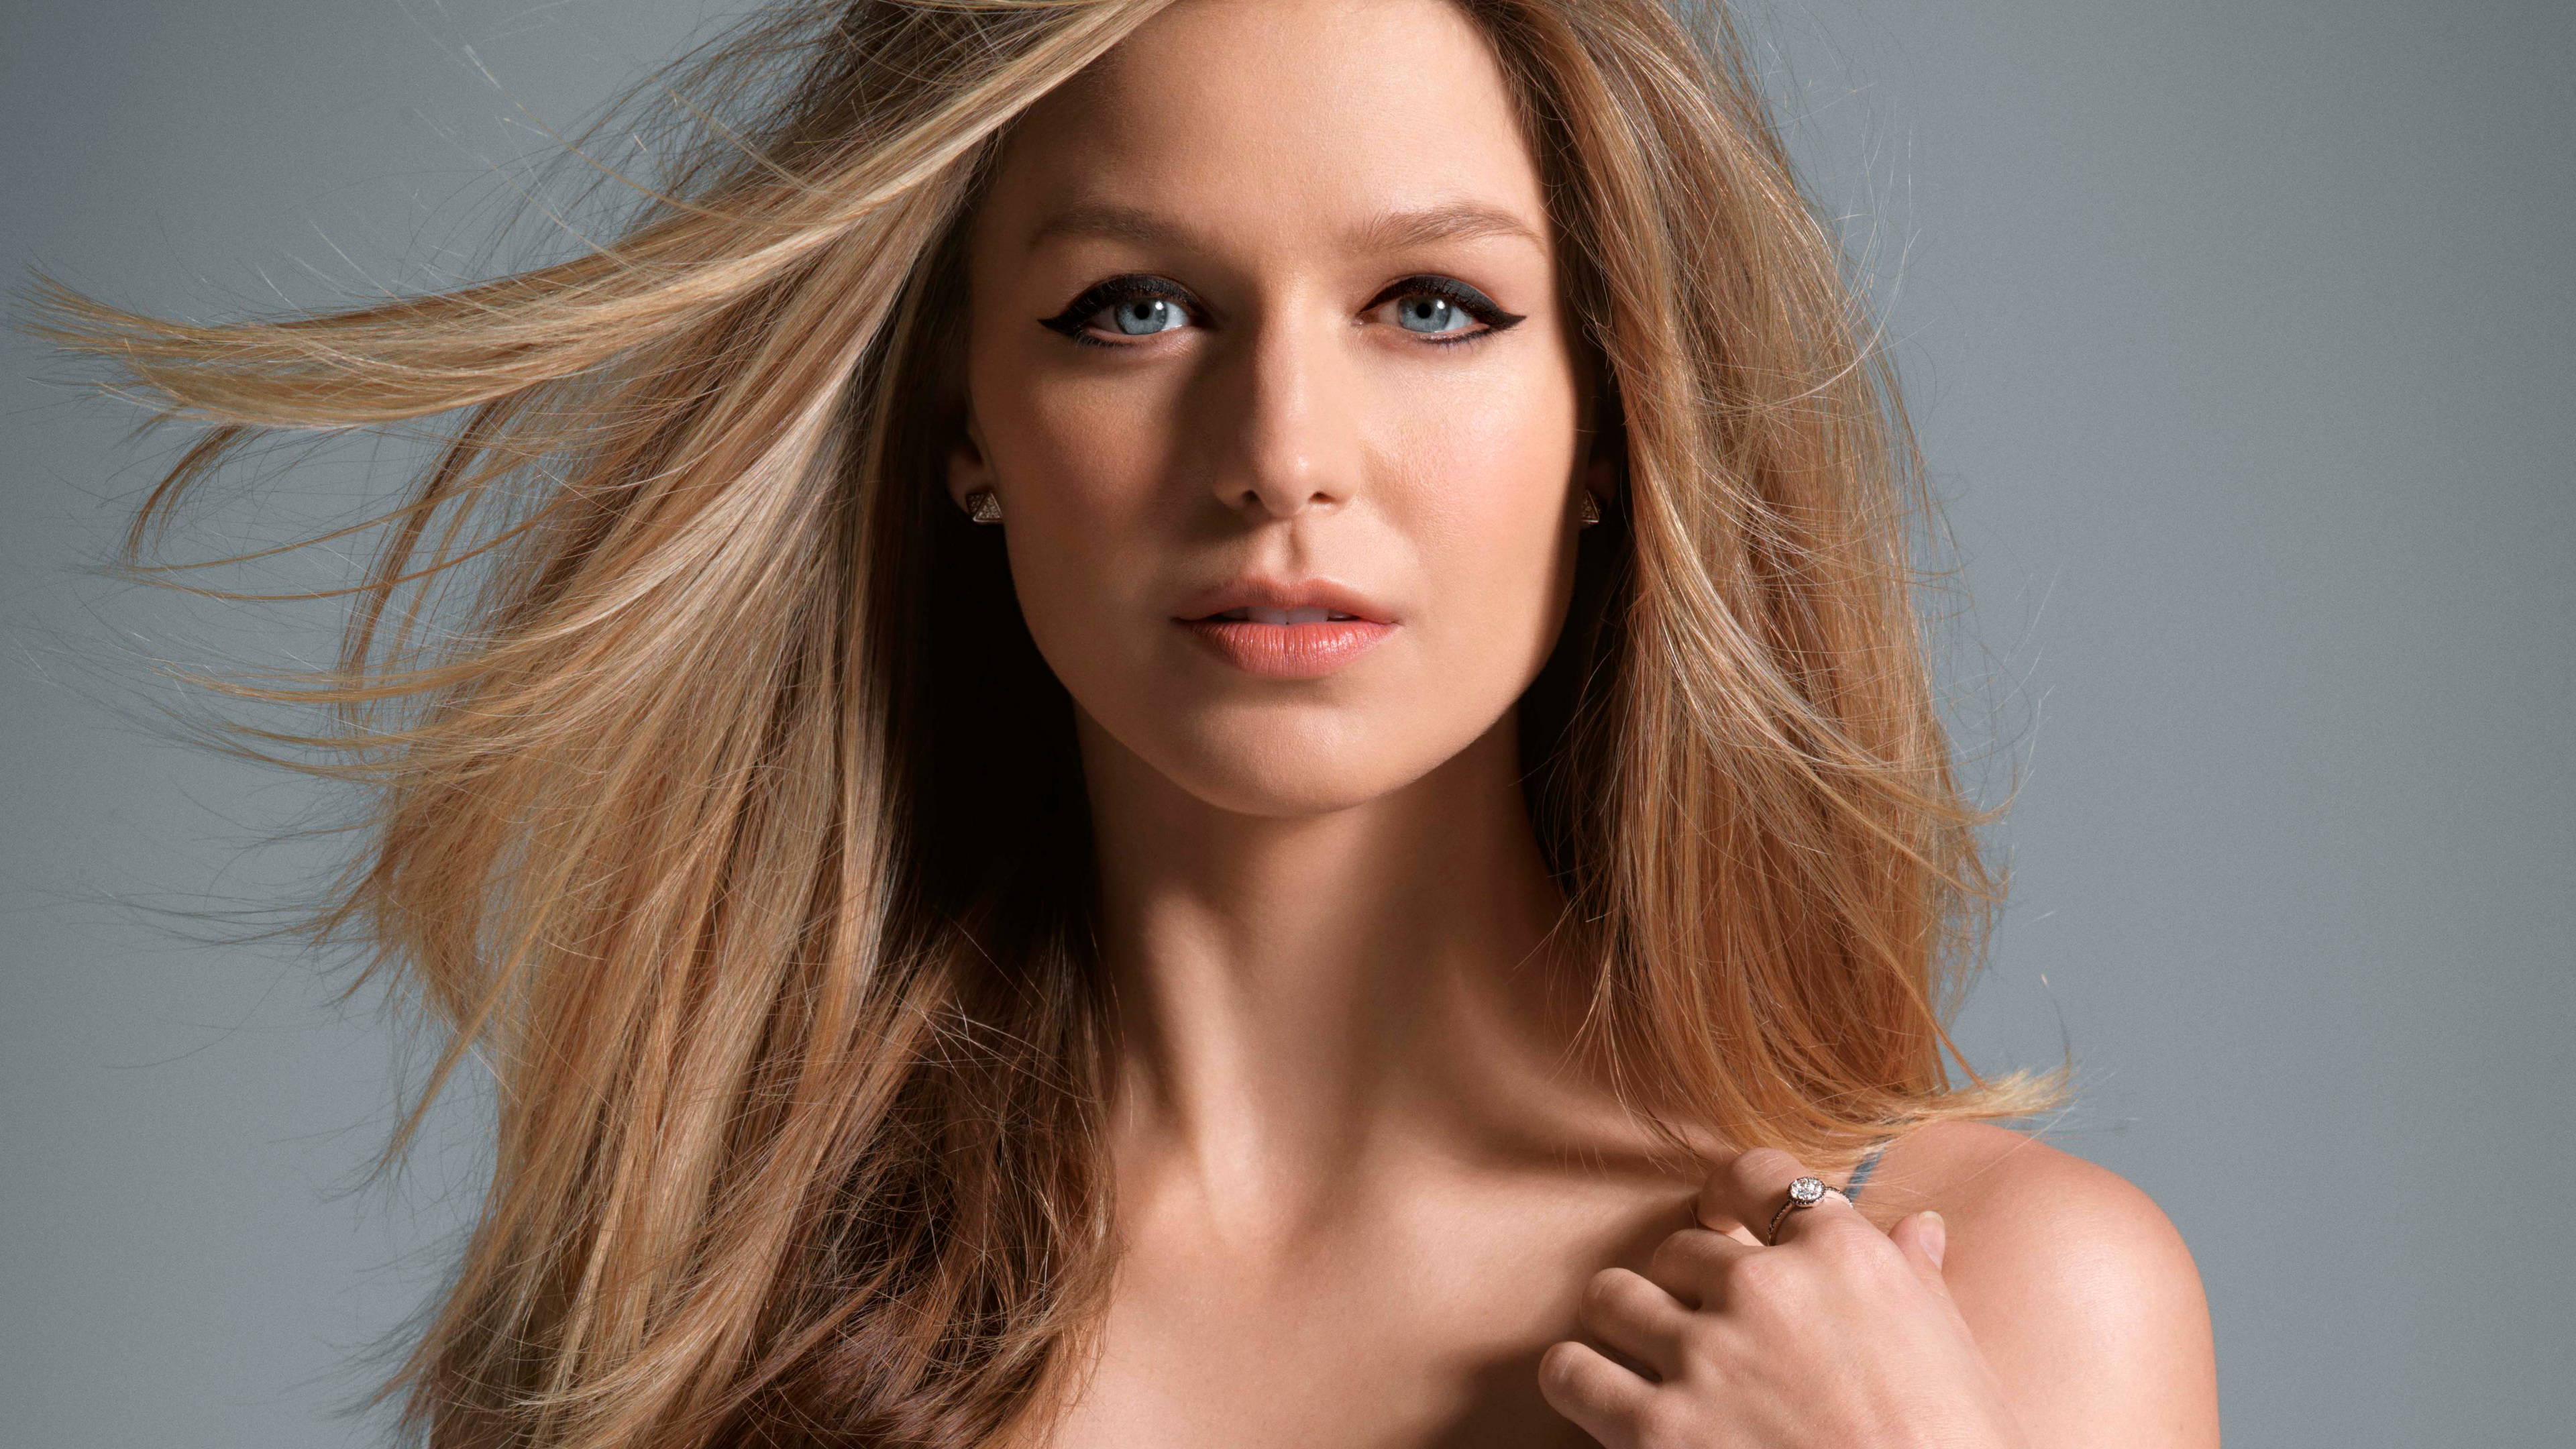 melissa benoist 2018 5k 1536859506 - Melissa Benoist 2018 5k - tv shows wallpapers, supergirl wallpapers, melissa benoist wallpapers, hd-wallpapers, celebrities wallpapers, 5k wallpapers, 4k-wallpapers